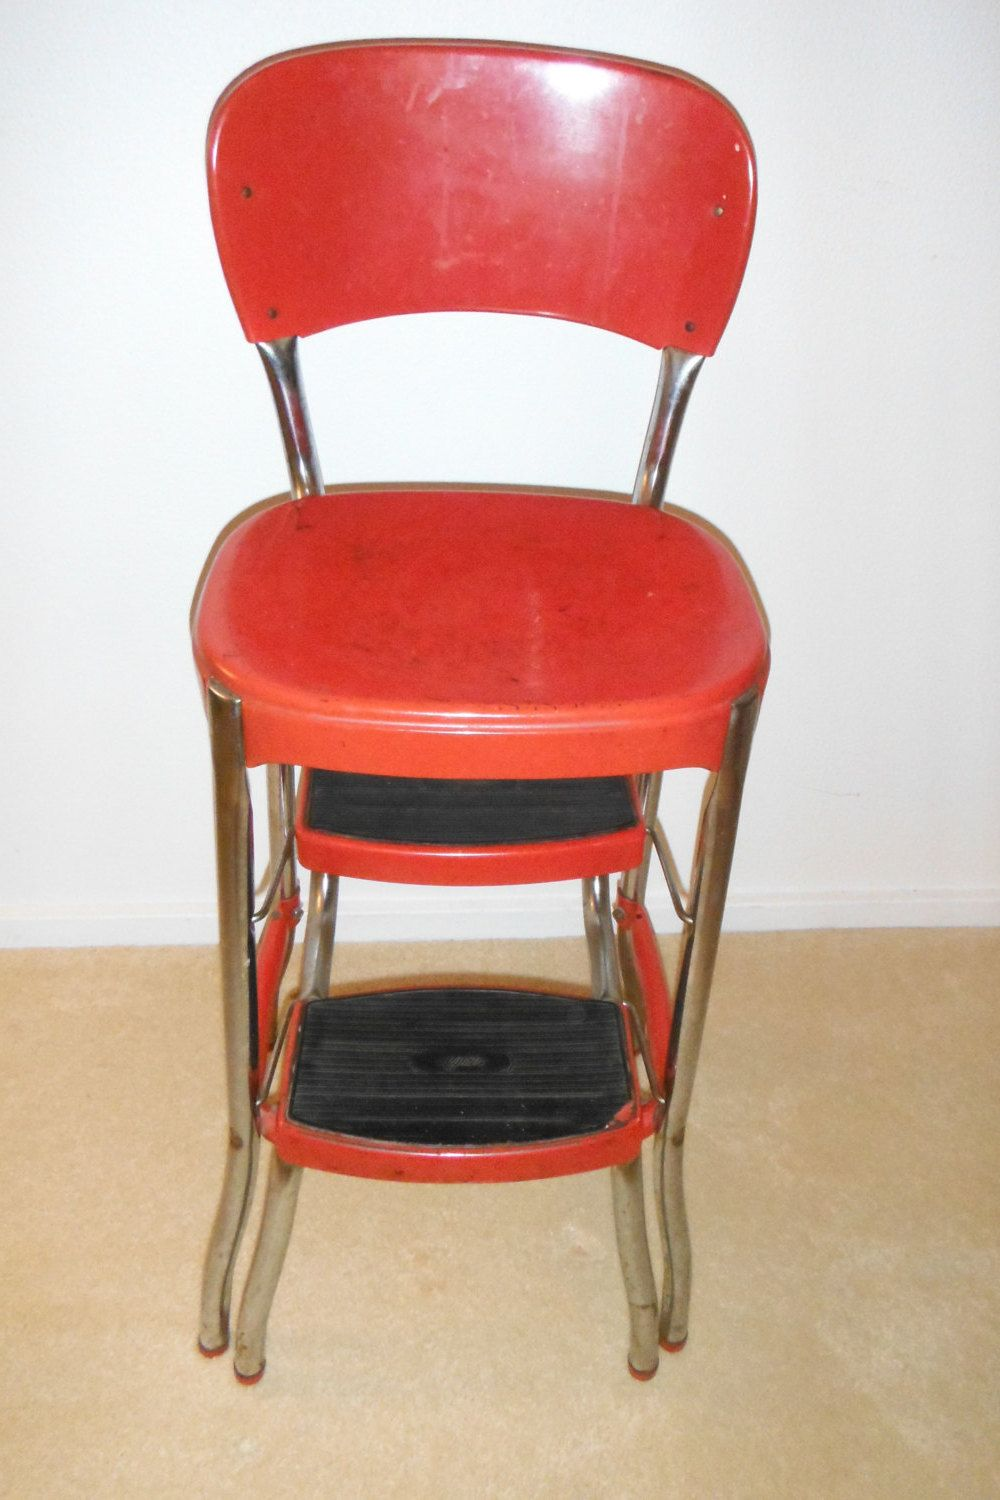 Red Cosco Stylaire Step Stool Chair Vintage Retro 1940 S